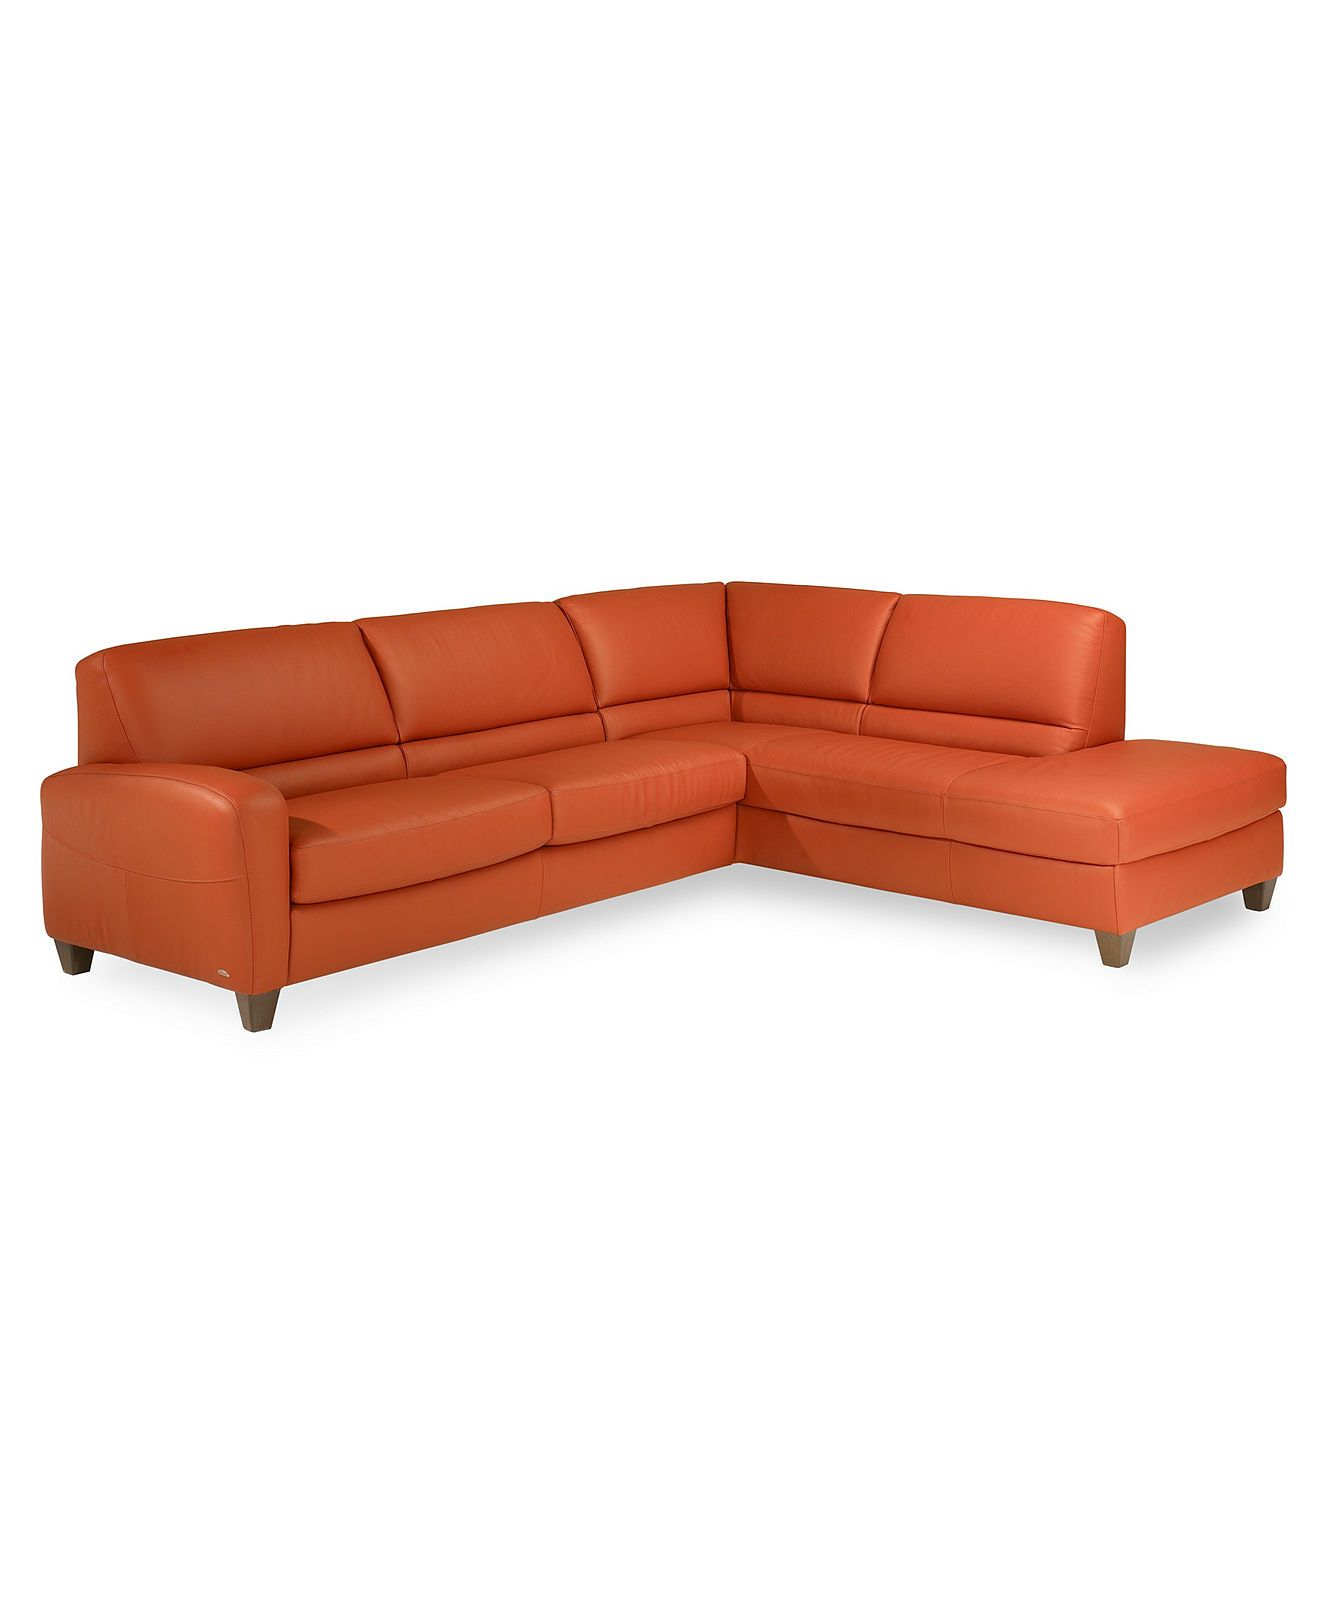 Sectional Bed Sofa Italsofa 144 Lr Sectional Sofa Leather Sectional Sofas